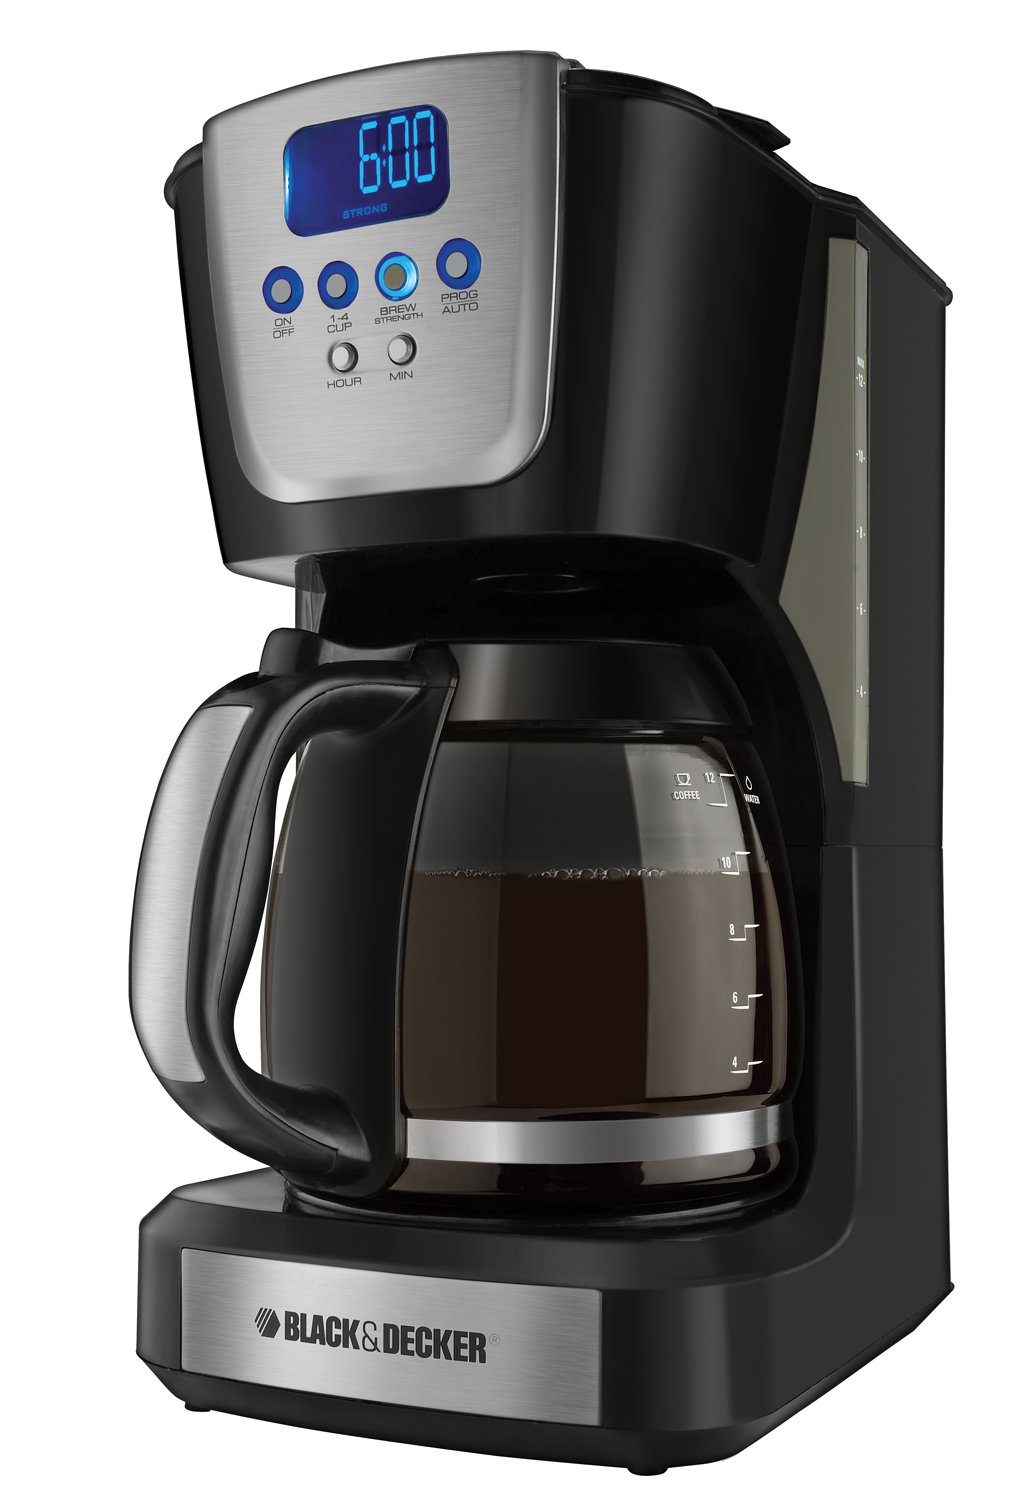 Black and decker coffee maker 12 cup programmable - Amazon Com Black Decker Cm5050 12 Cup Programmable Coffeemaker Drip Coffeemakers Kitchen Dining